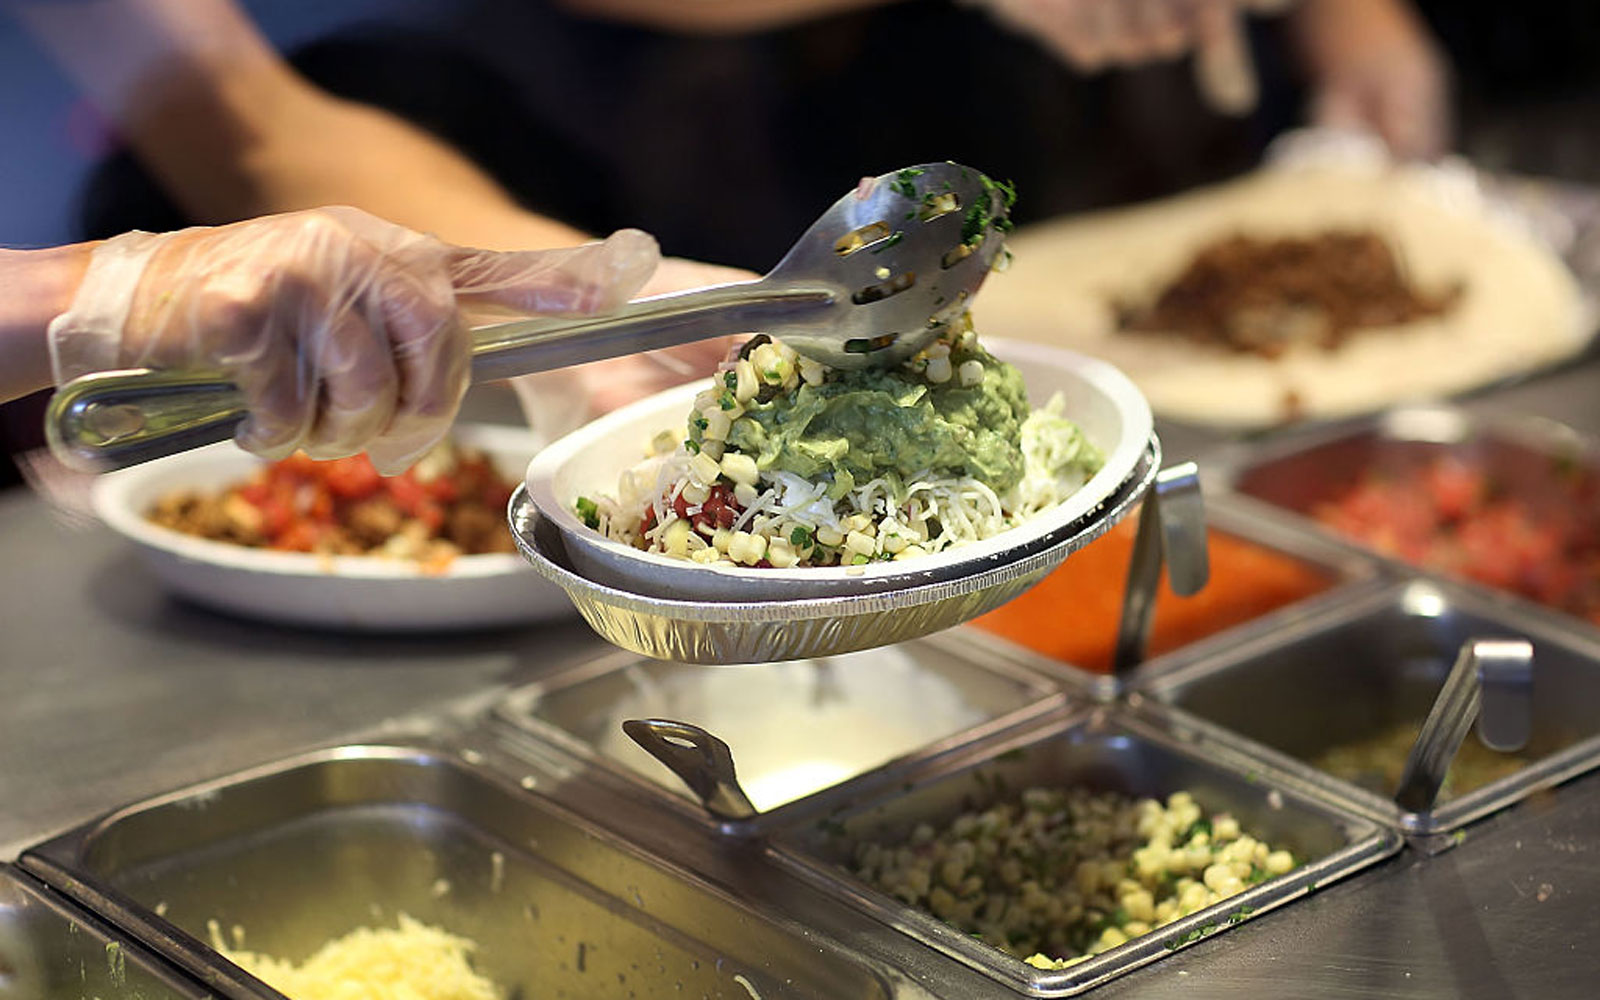 New Study Finds Chipotle and Sweetgreen Bowls Contain Cancer-linked Chemicals